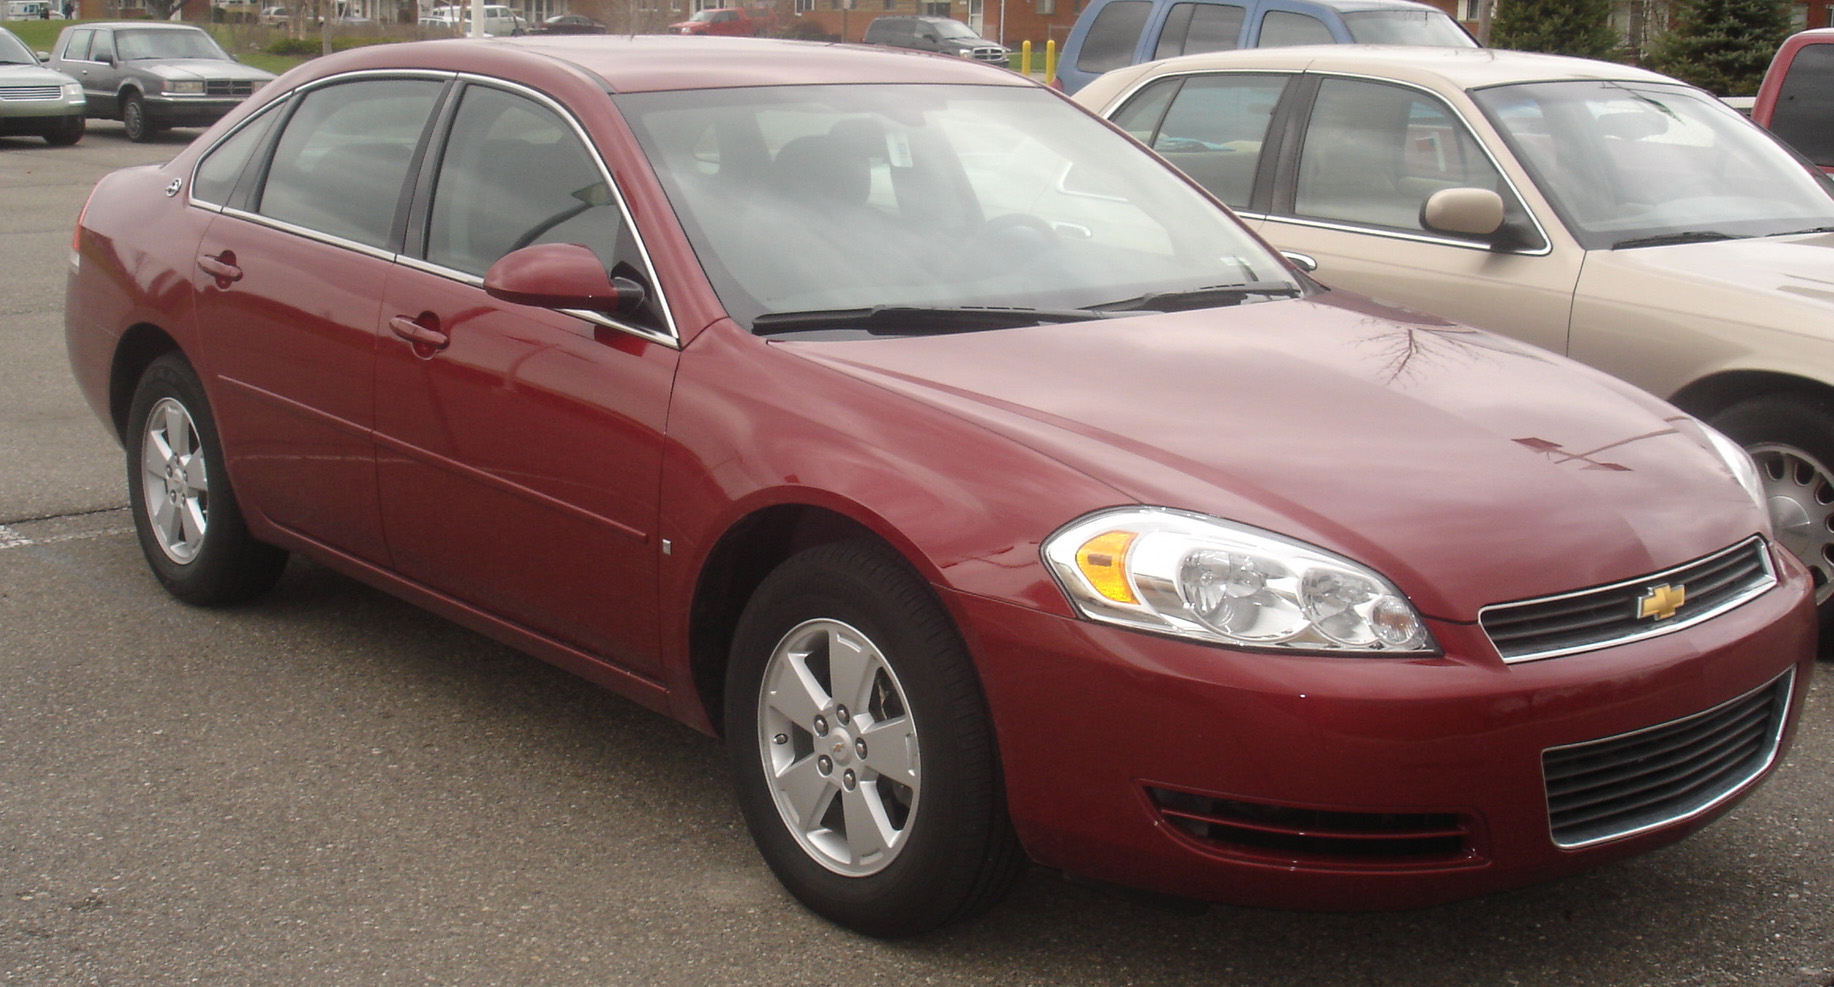 Image Result For Chevrolet Impala